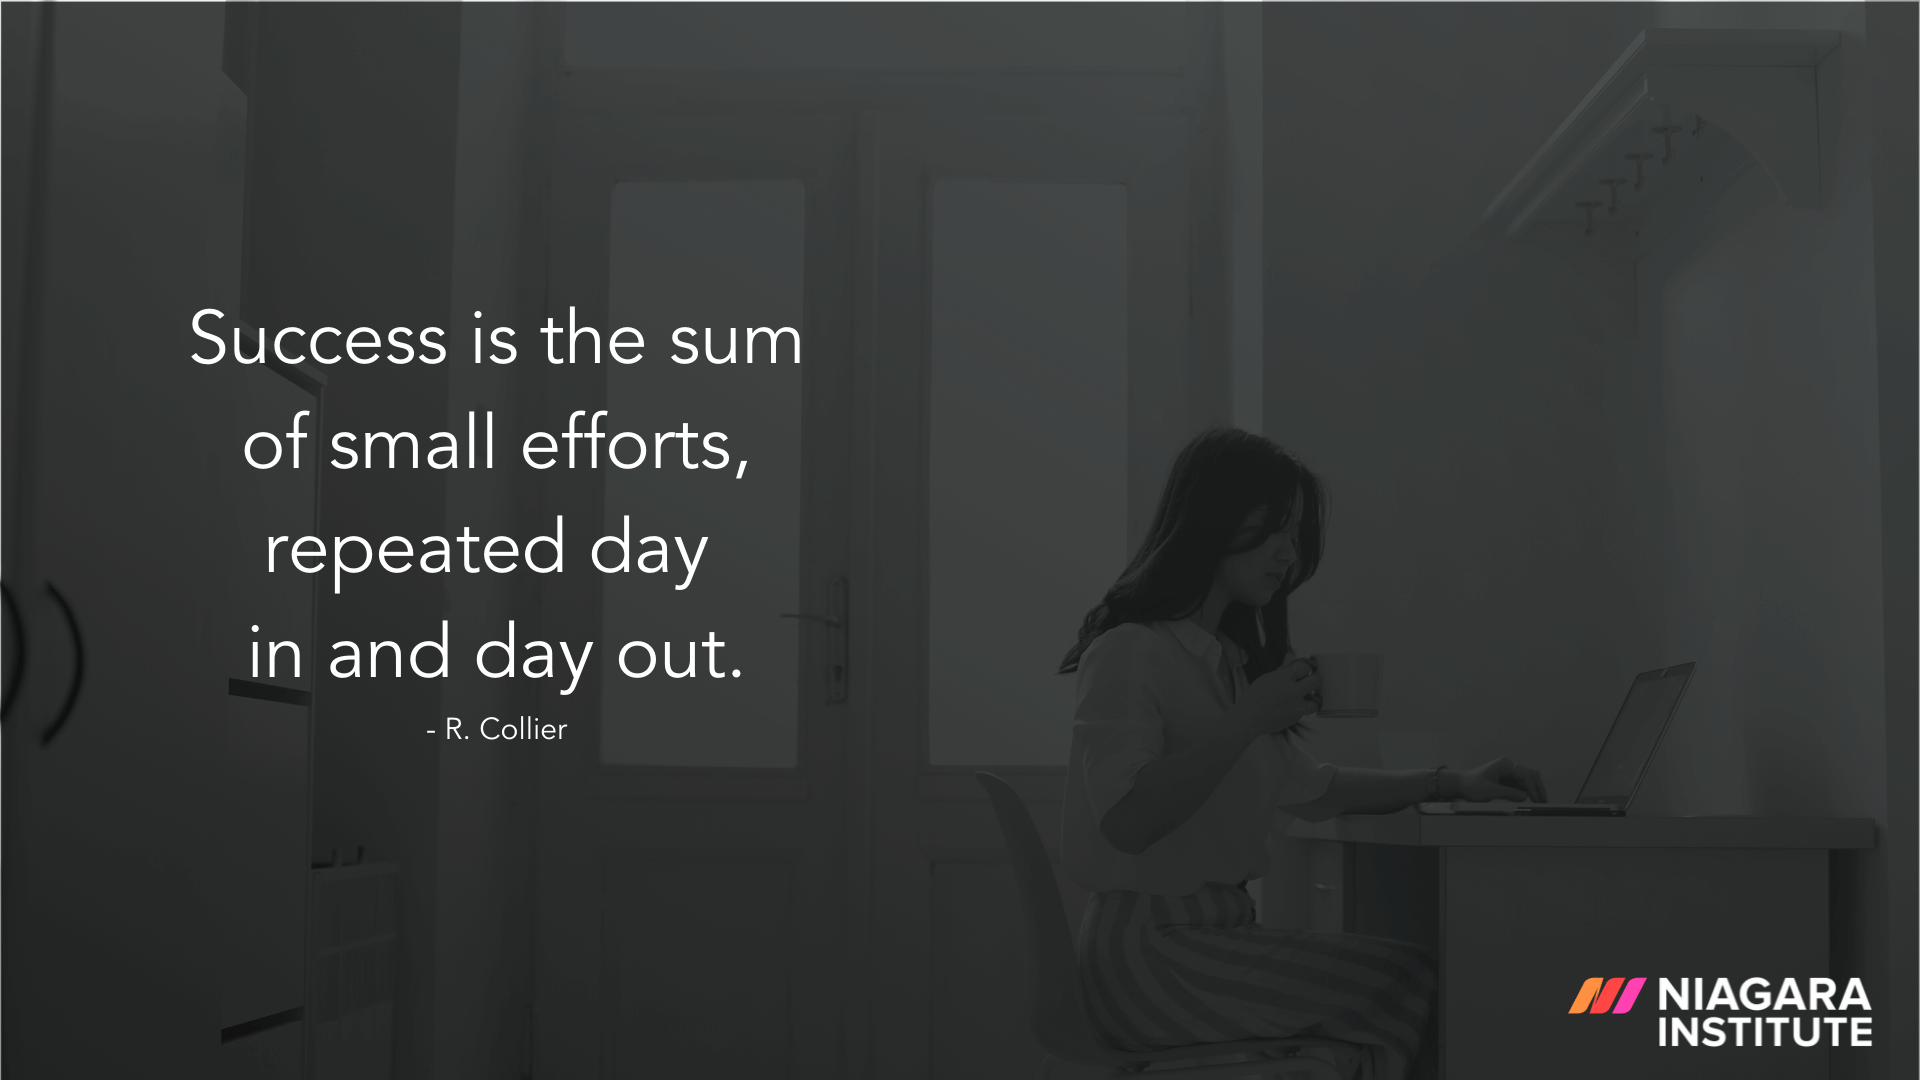 Success is the sum of small efforts, repeated day in and day out - R. Collier